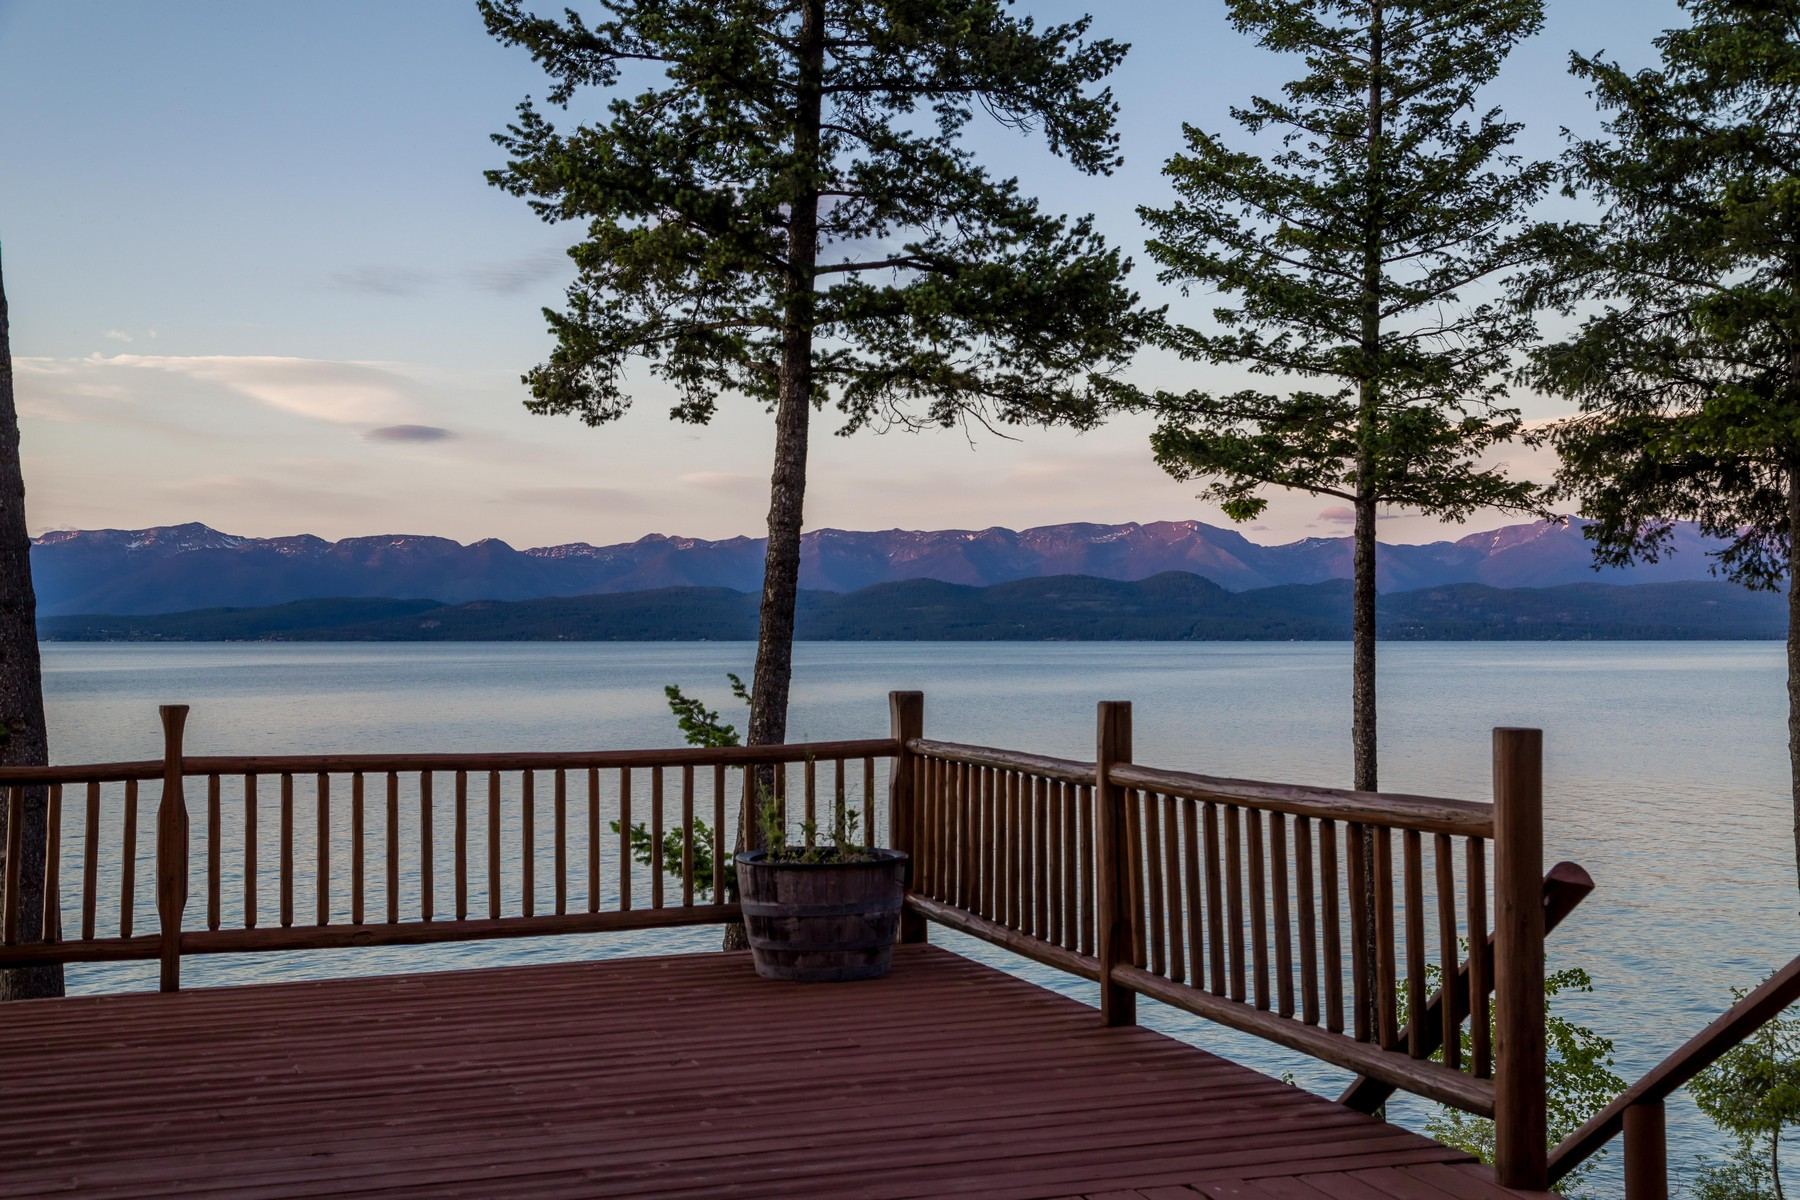 Single Family Homes for Sale at 329 Whipps Lane Lakeside, Montana 59922 United States